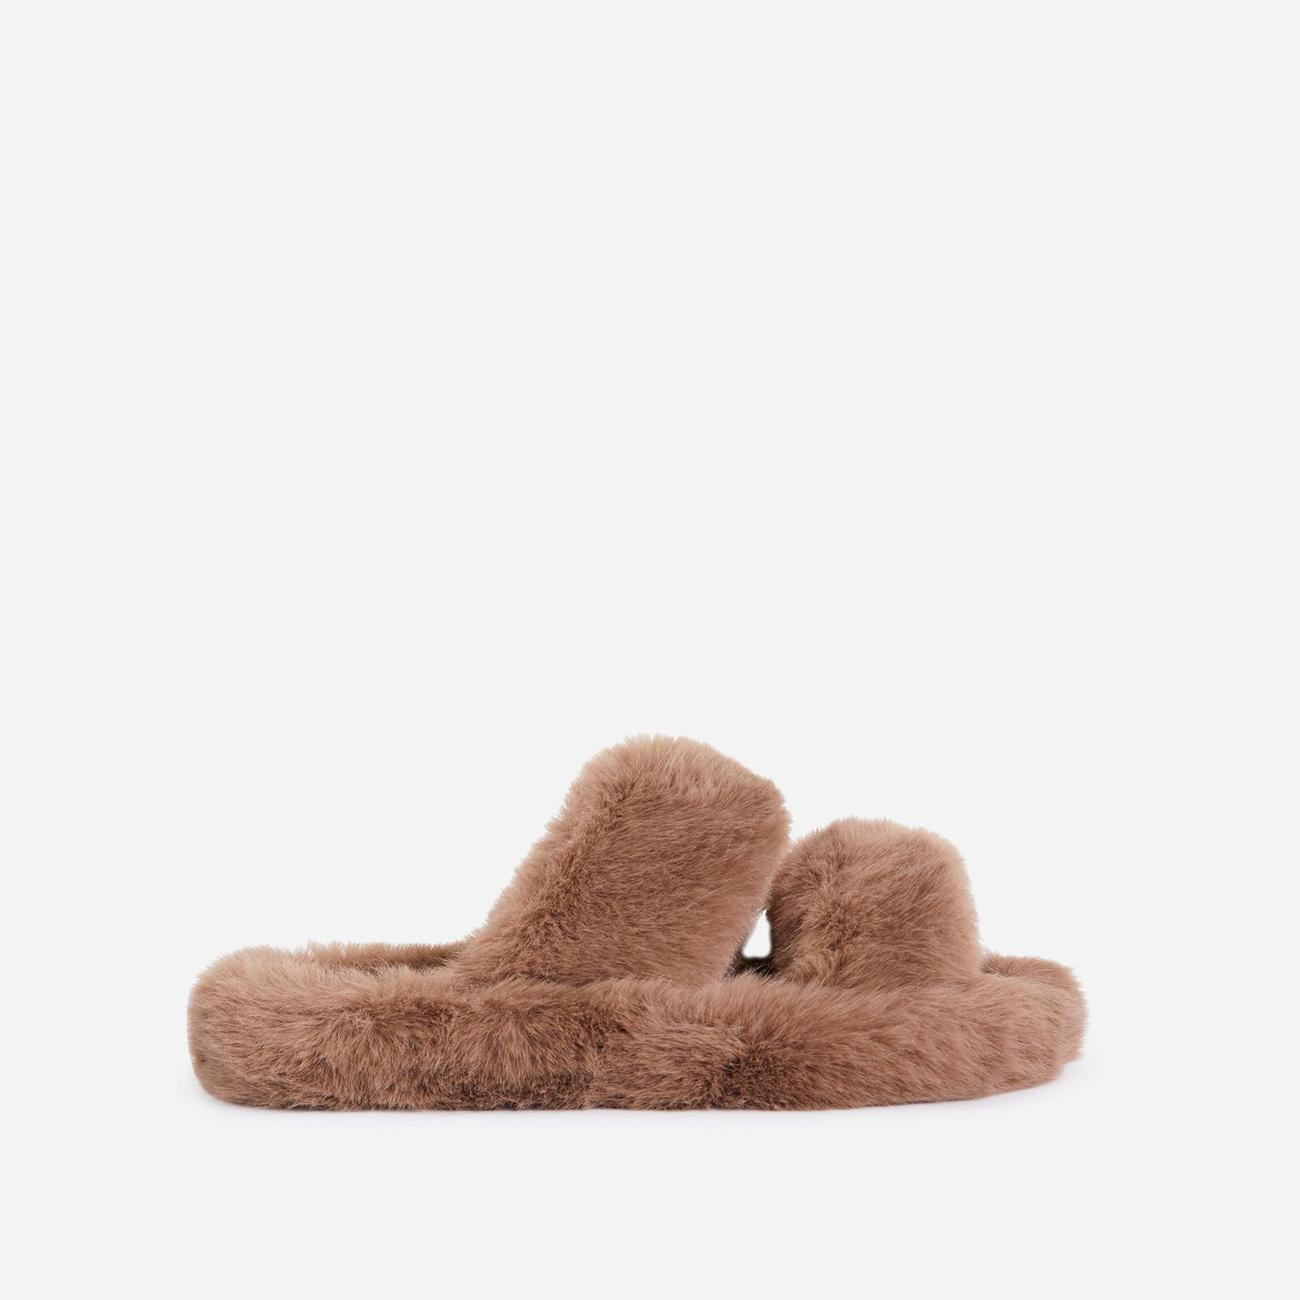 Pamper Fluffy Double Strap Slider Slipper In Nude Faux Fur Image 1